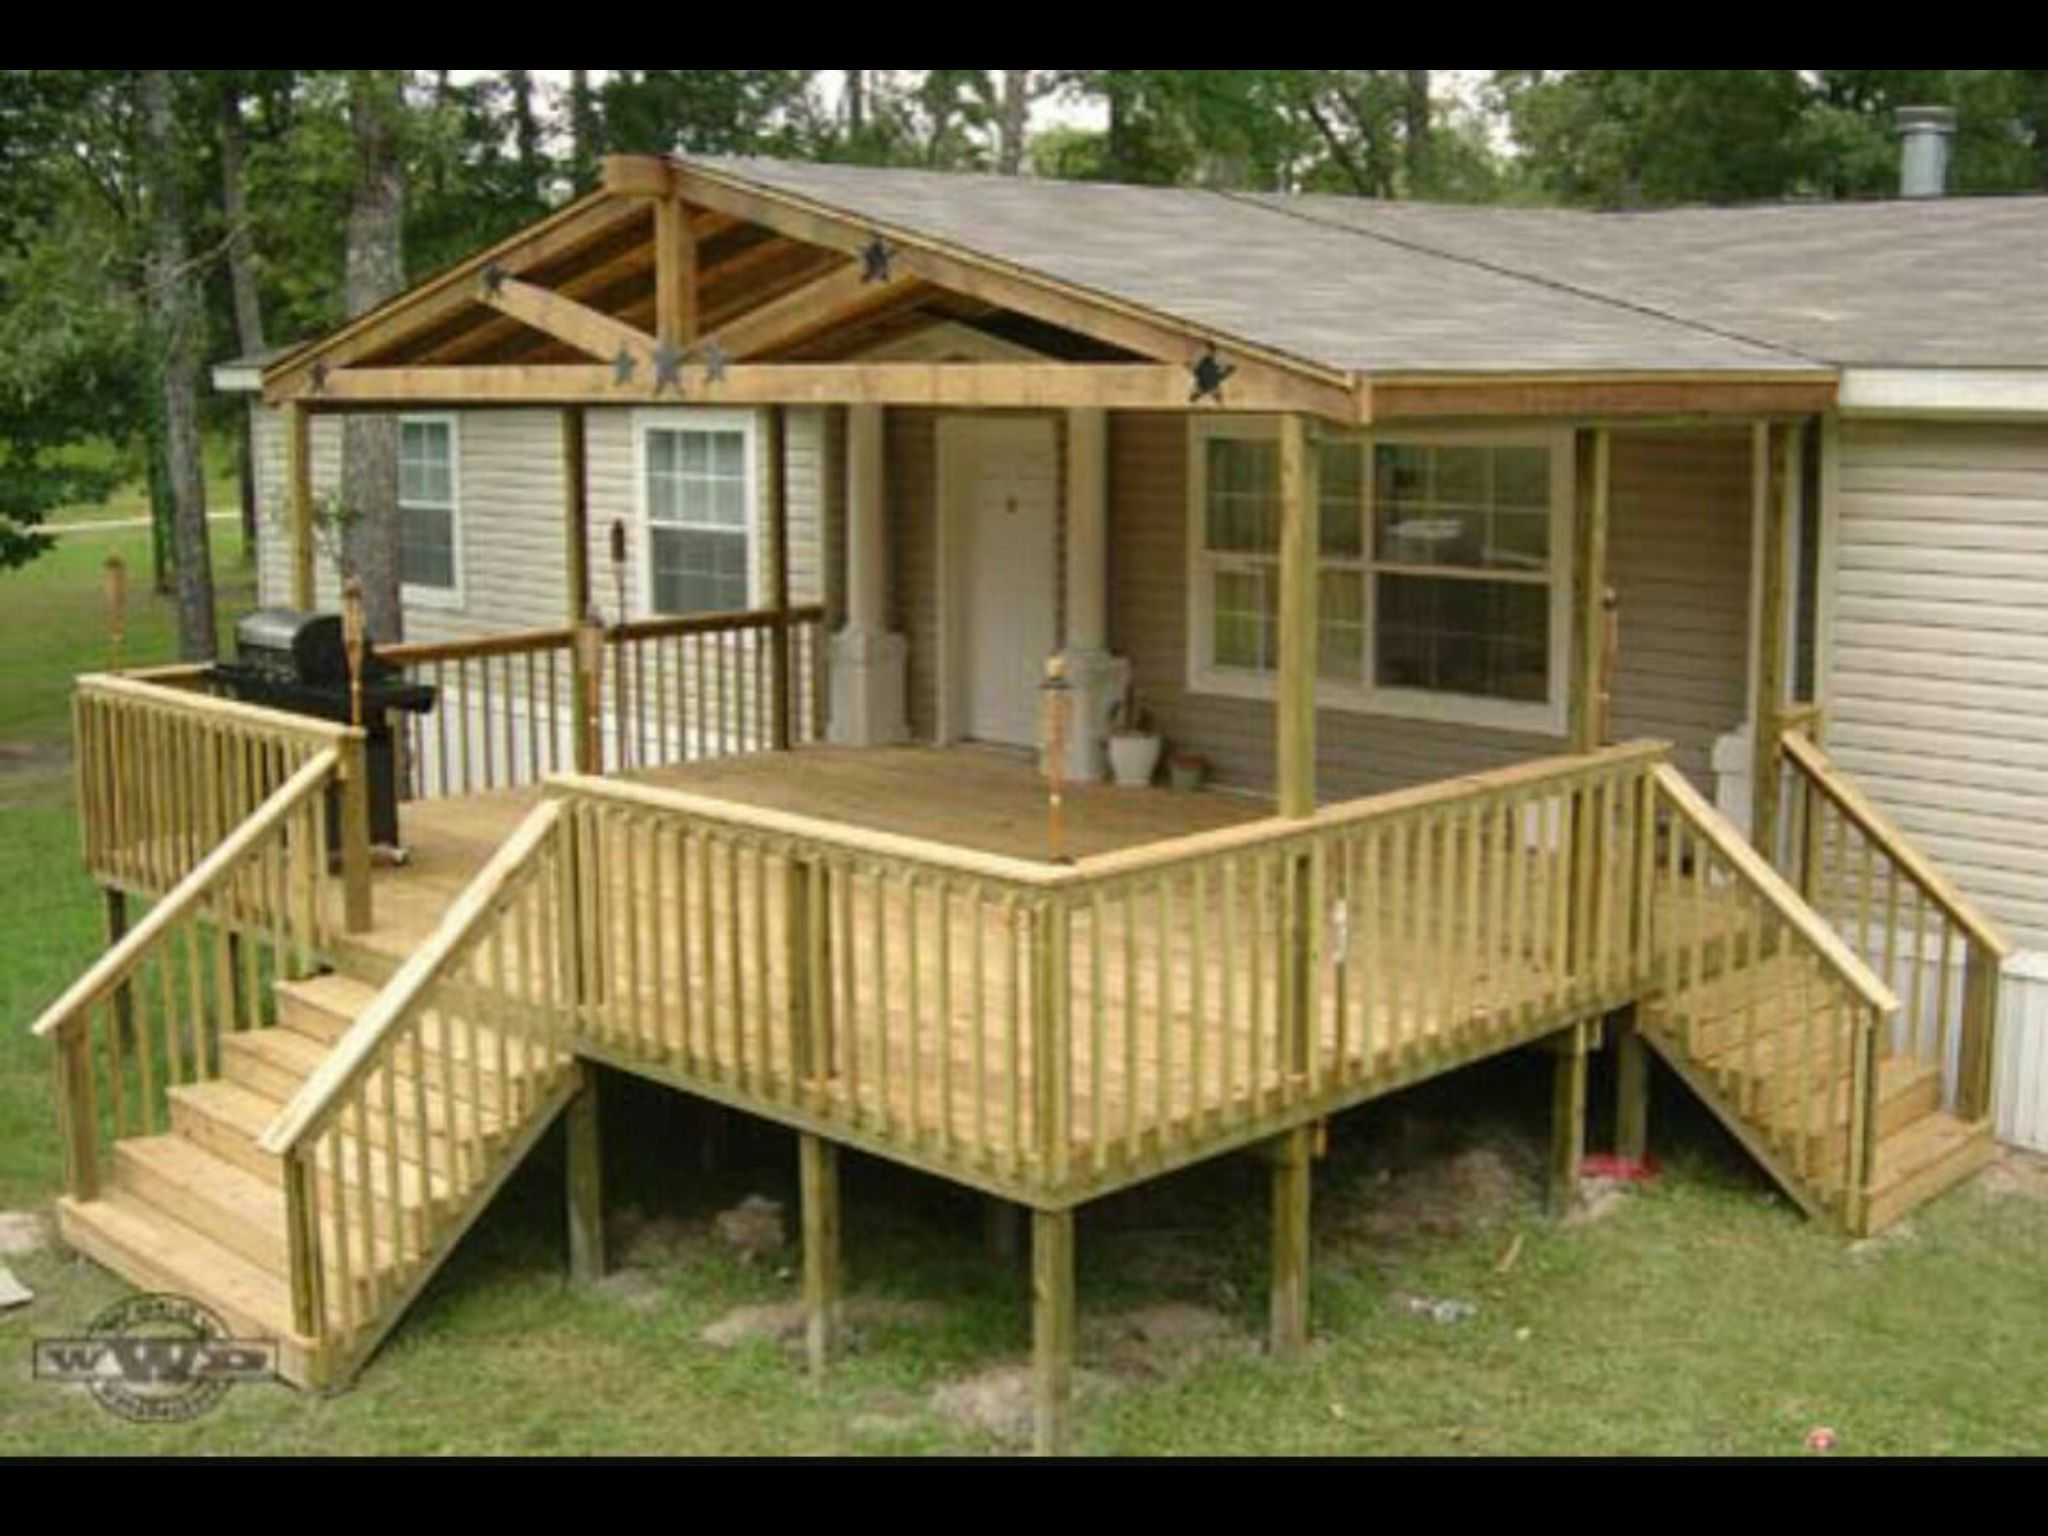 Our Future Porch Deck J S Home Improvement Shelby Nc With